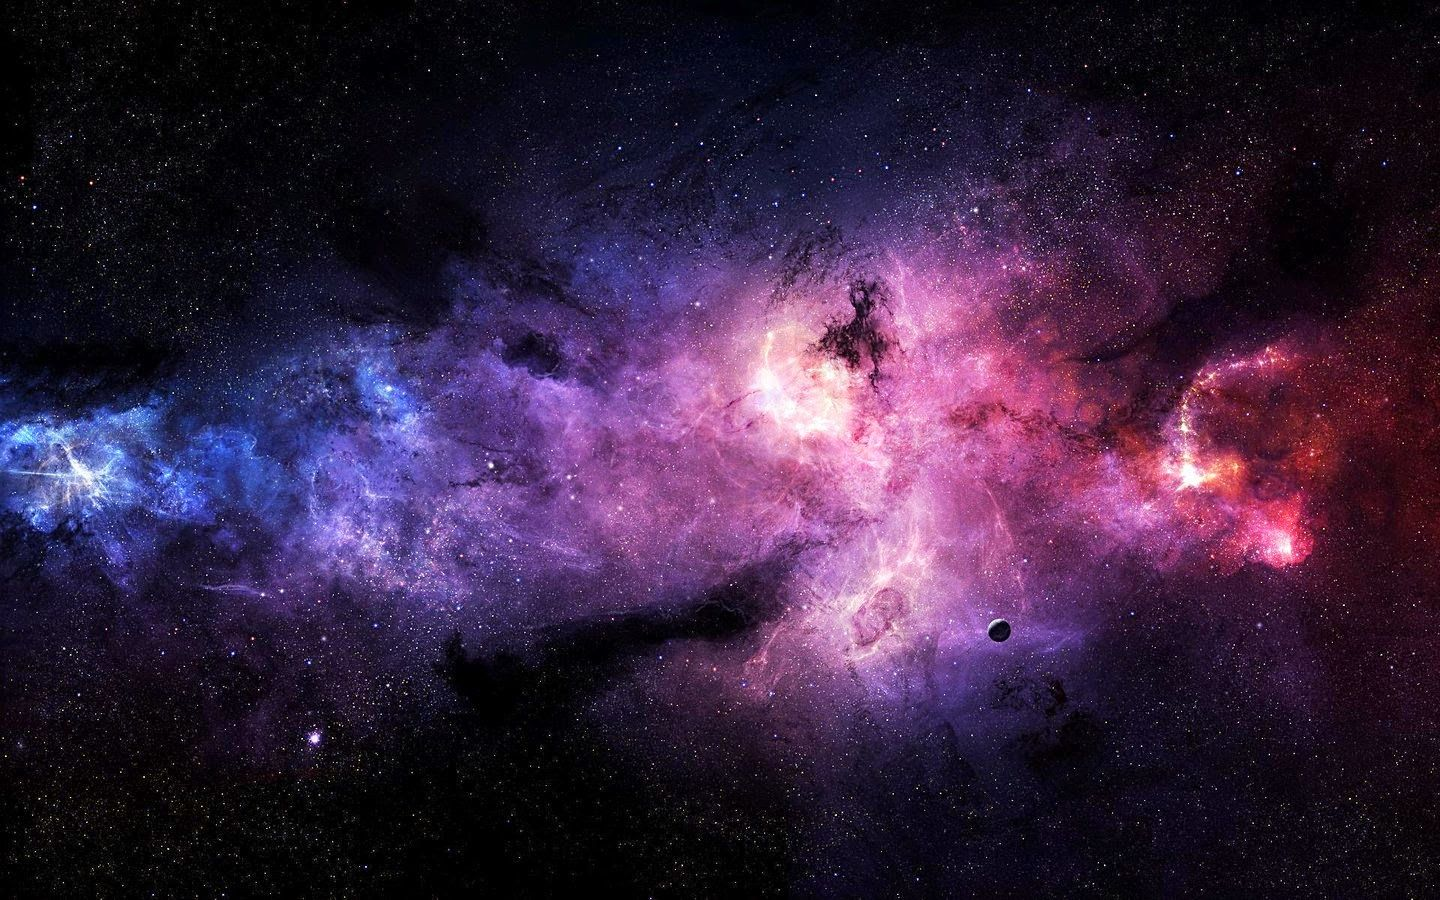 High Resolution Space Images Space Wallpaper Wallpaper Space Nebula Wallpaper Purple Galaxy Wallpaper